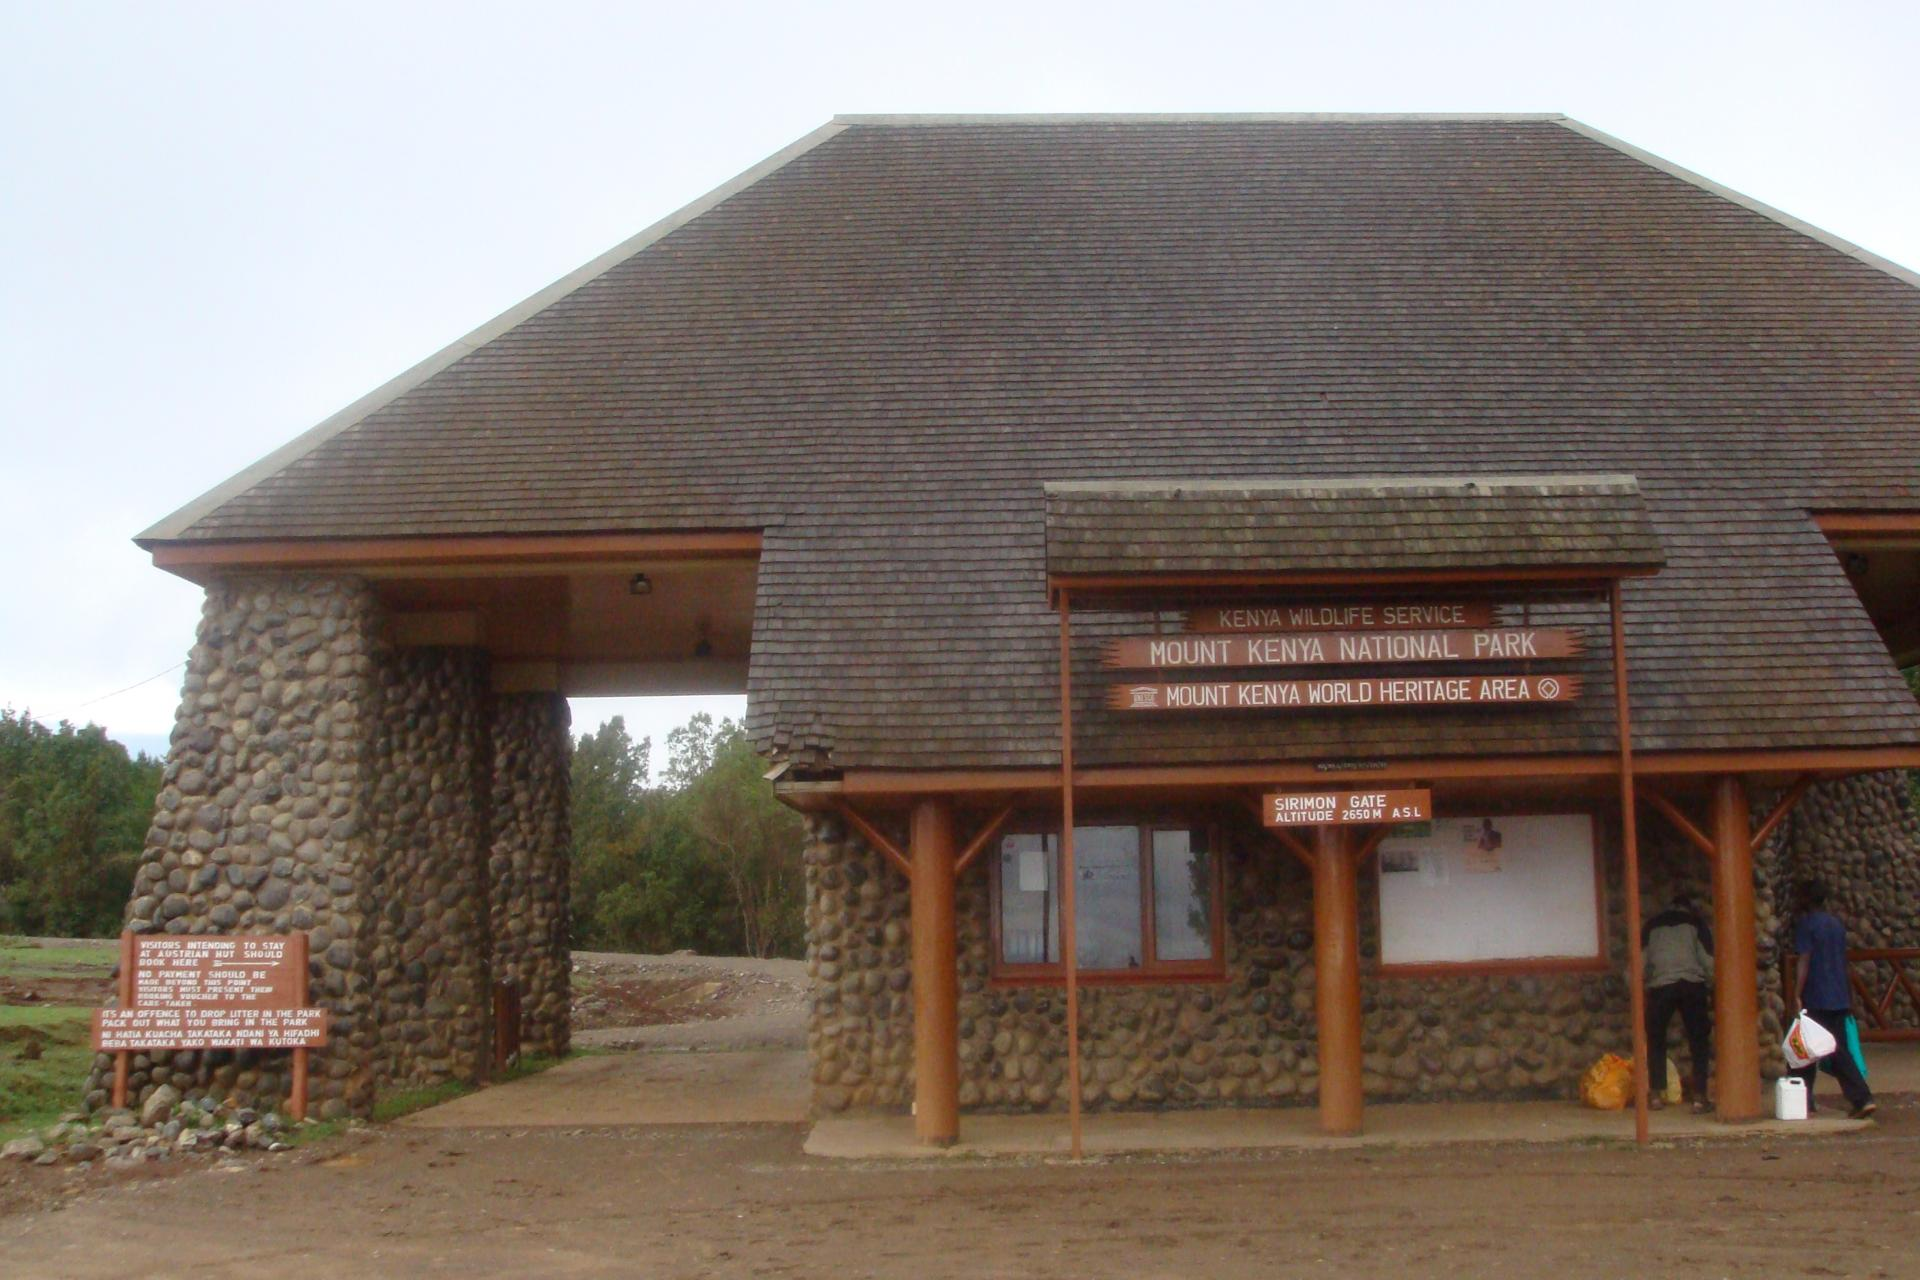 Main Mount Kenya Entrance Gate